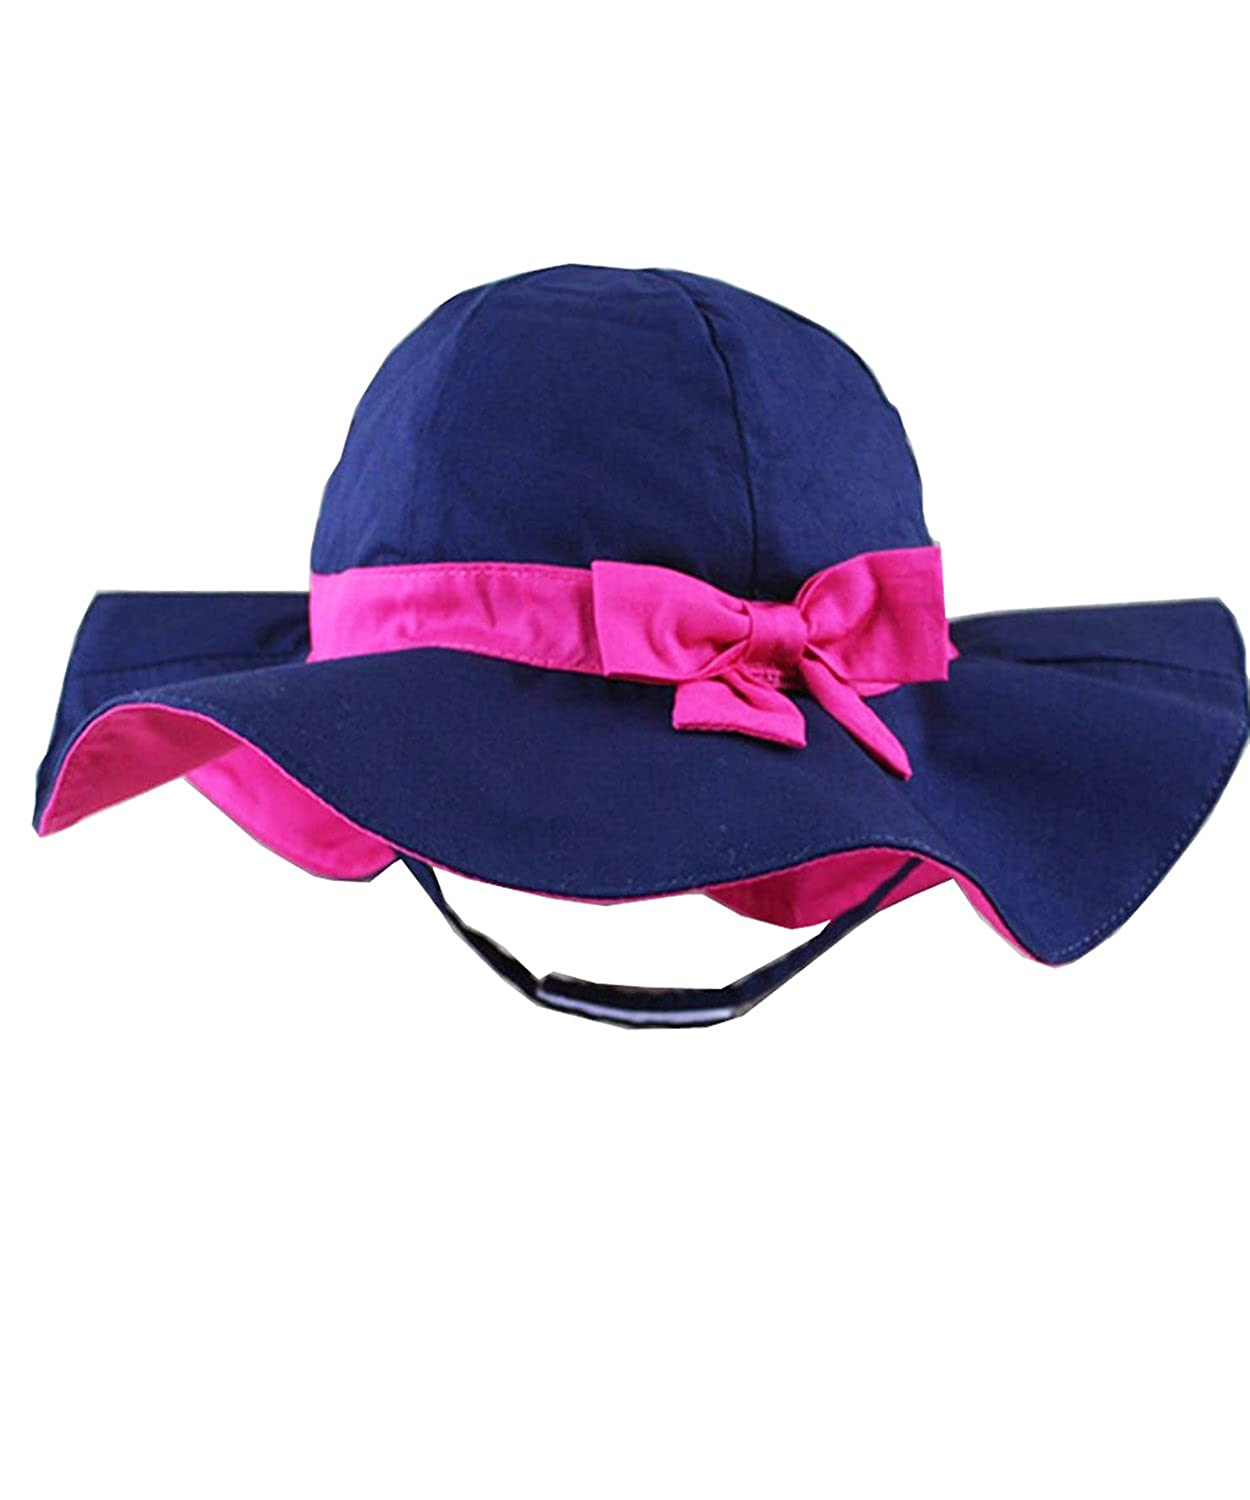 Toddler Bucket Hat Kid Baby Infant Summer Cute Cap Wide Brim Sunhat UV Protection